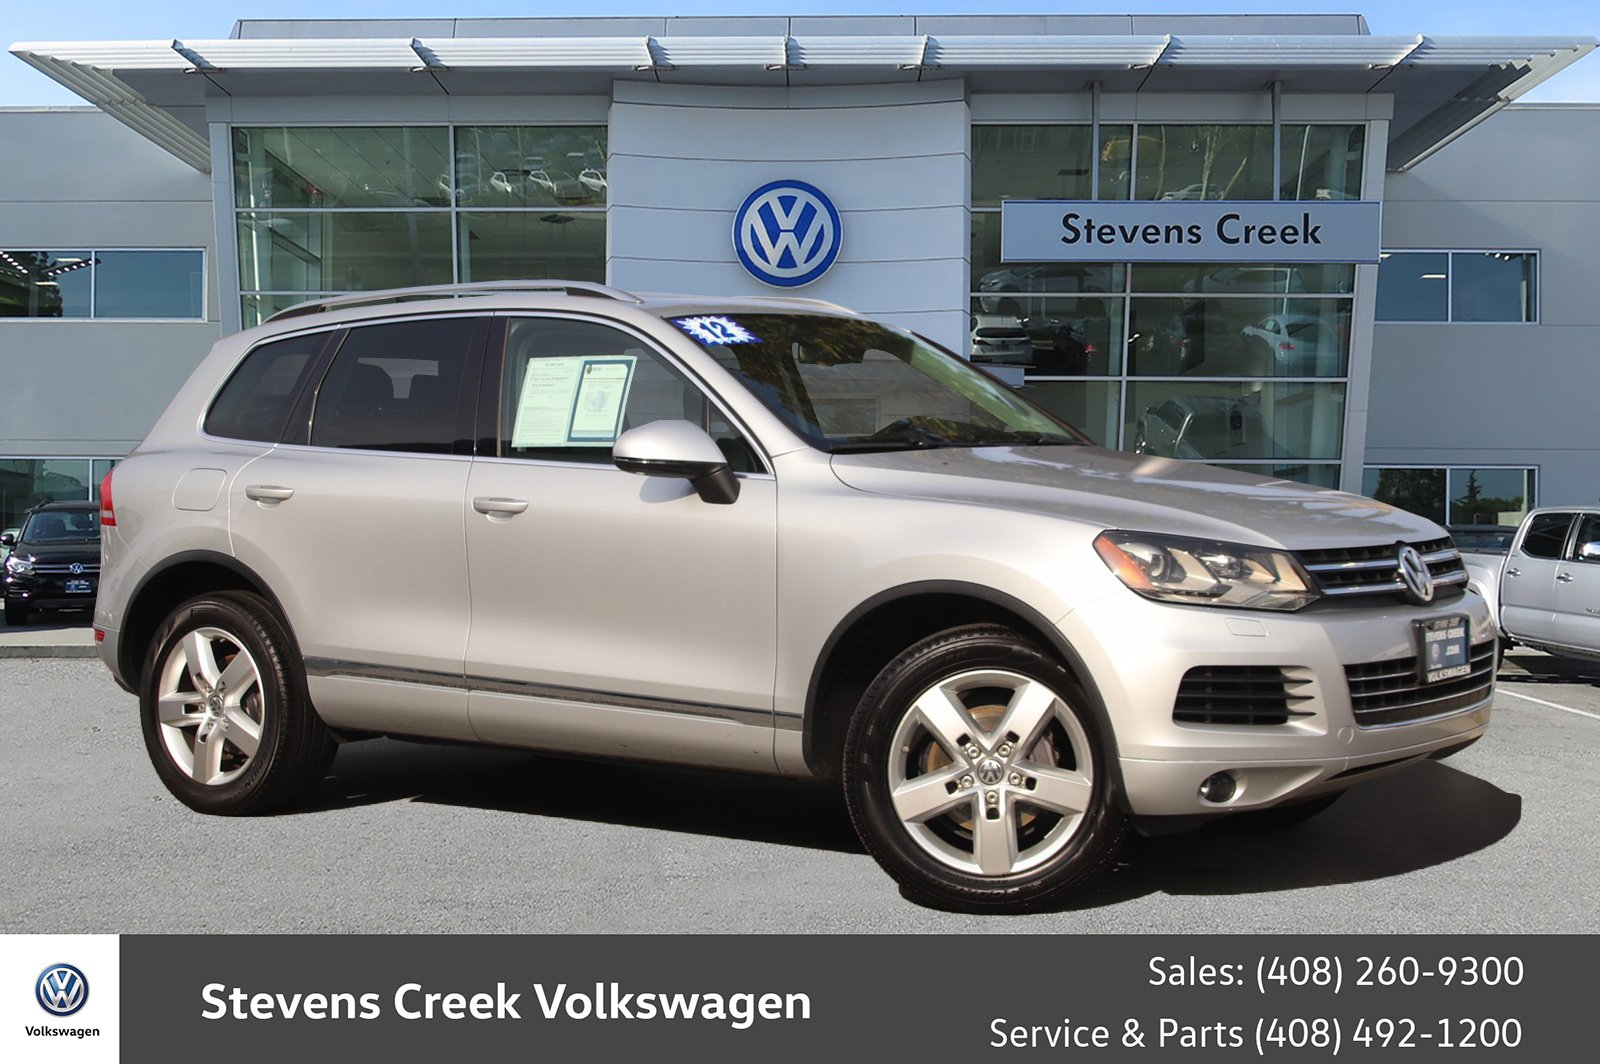 Pre-Owned 2012 Volkswagen Touareg VR6 Lux